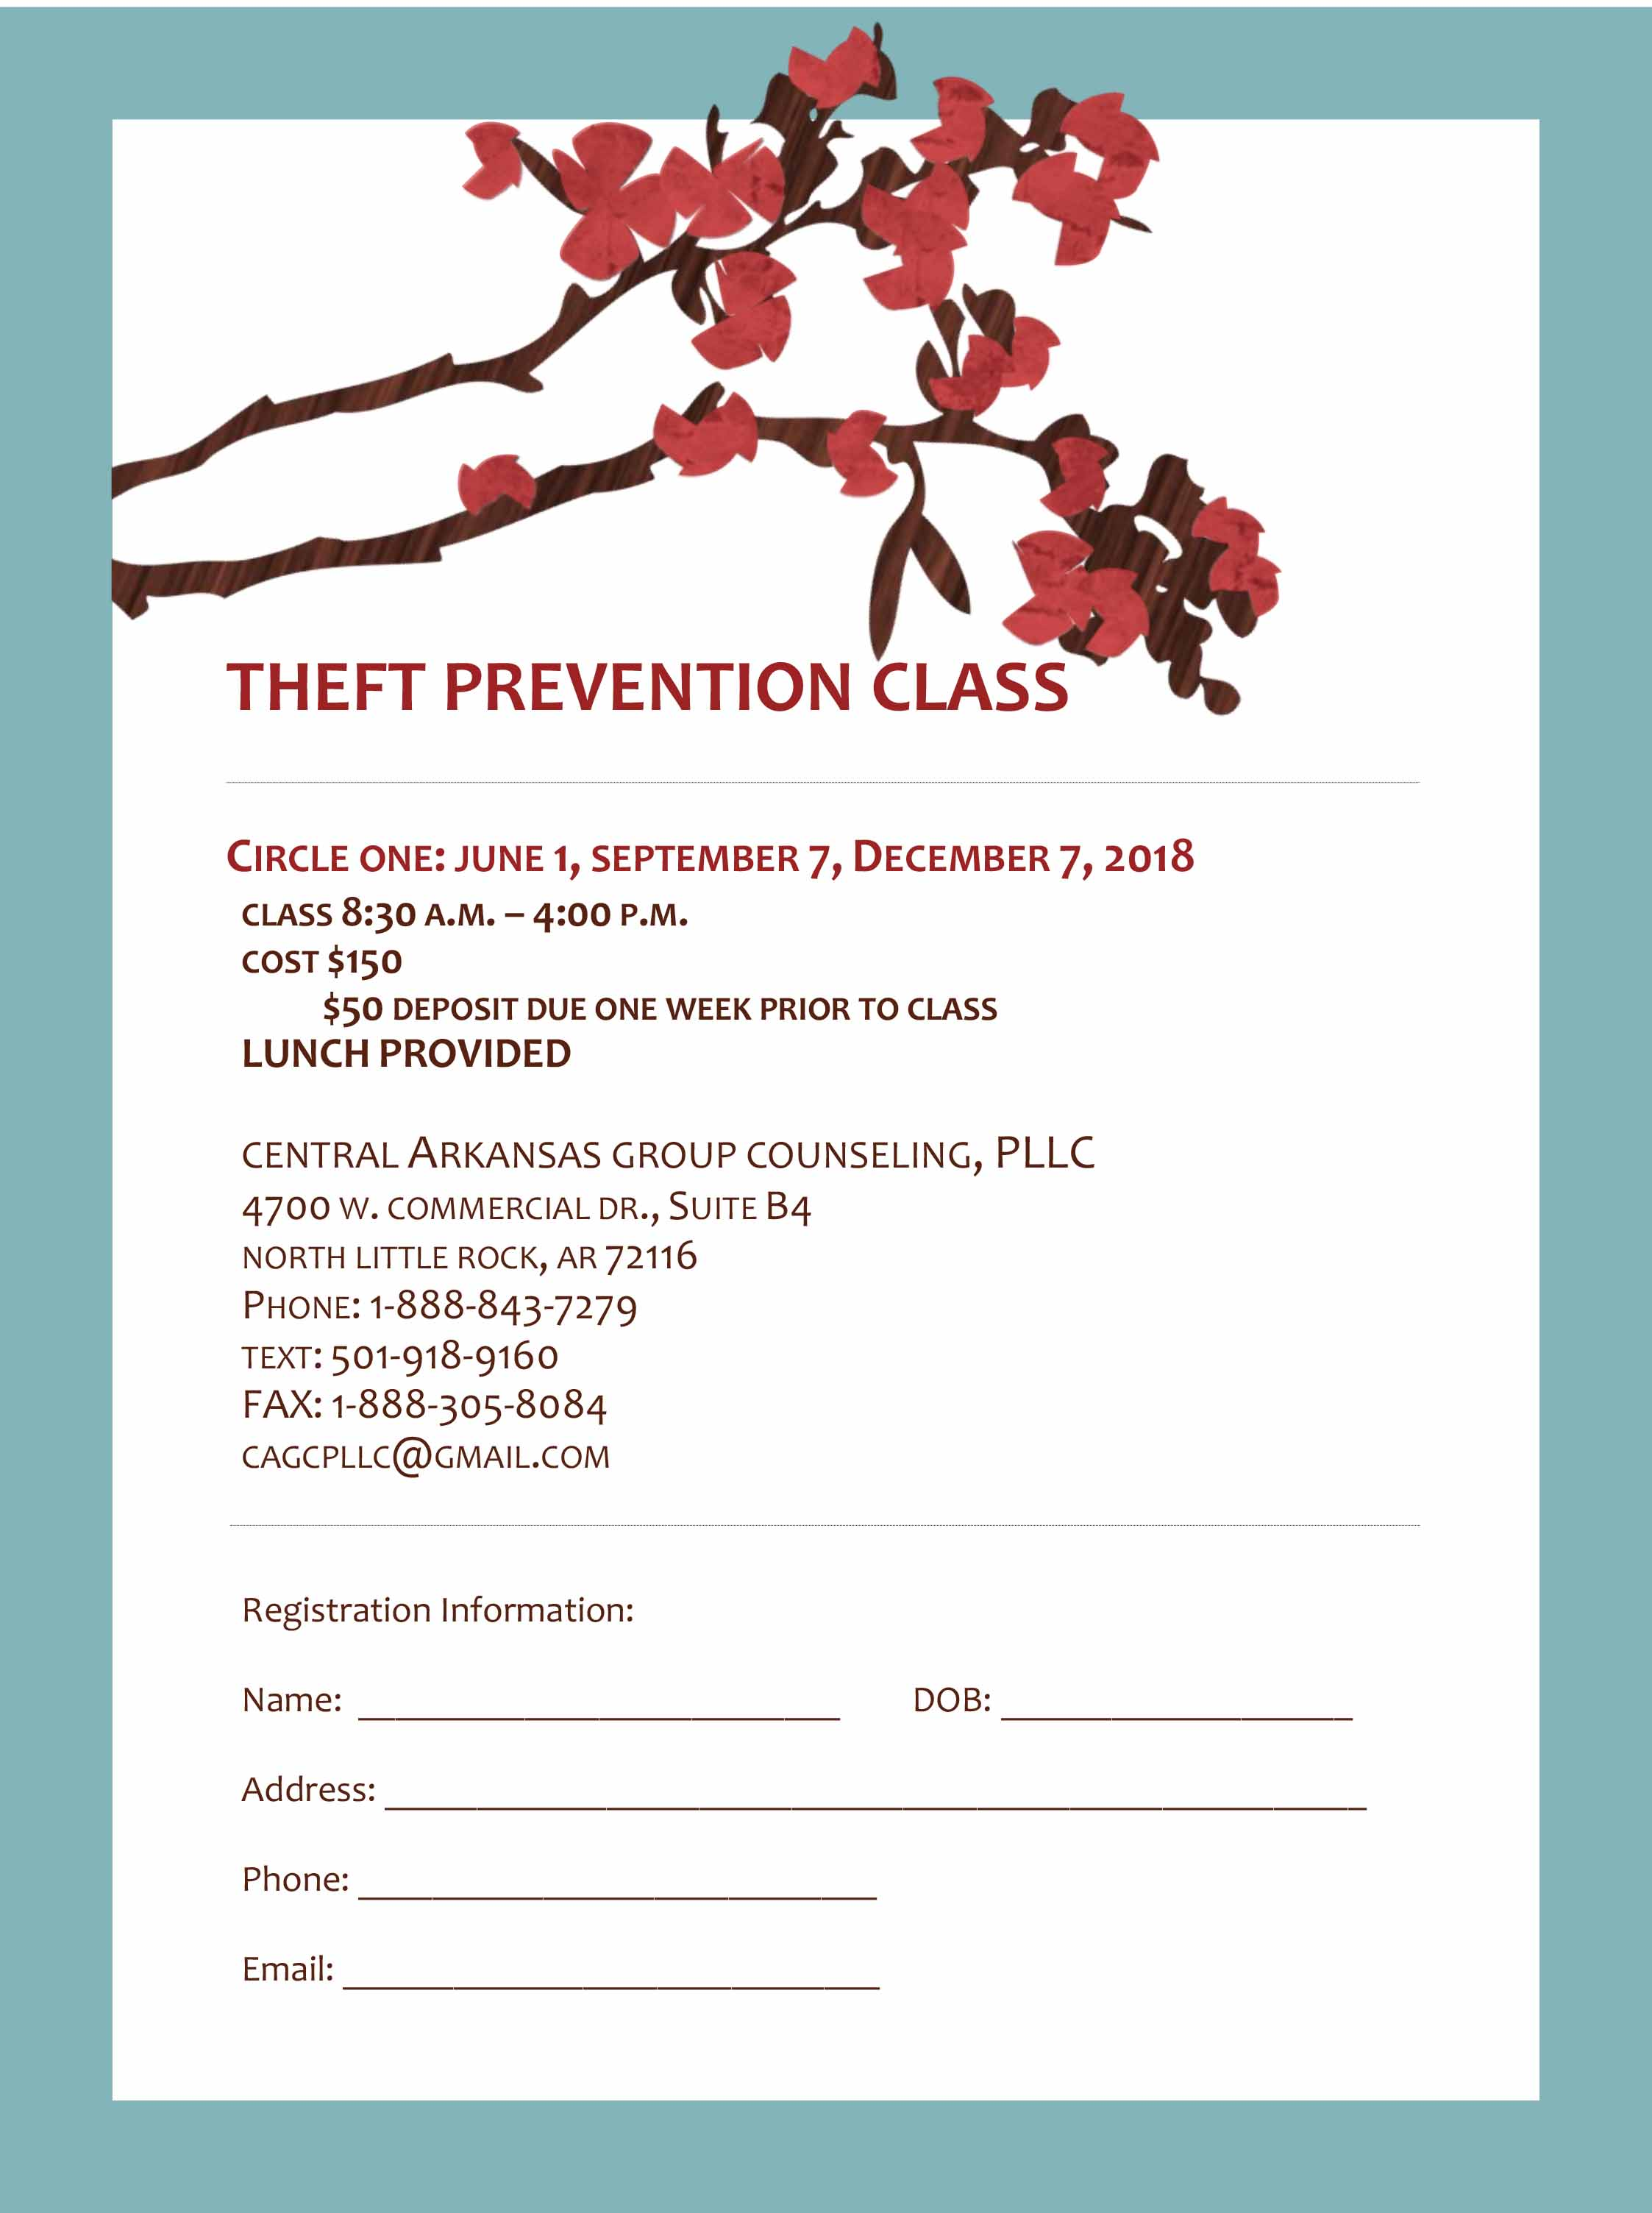 Theft prevention class Registration 2018